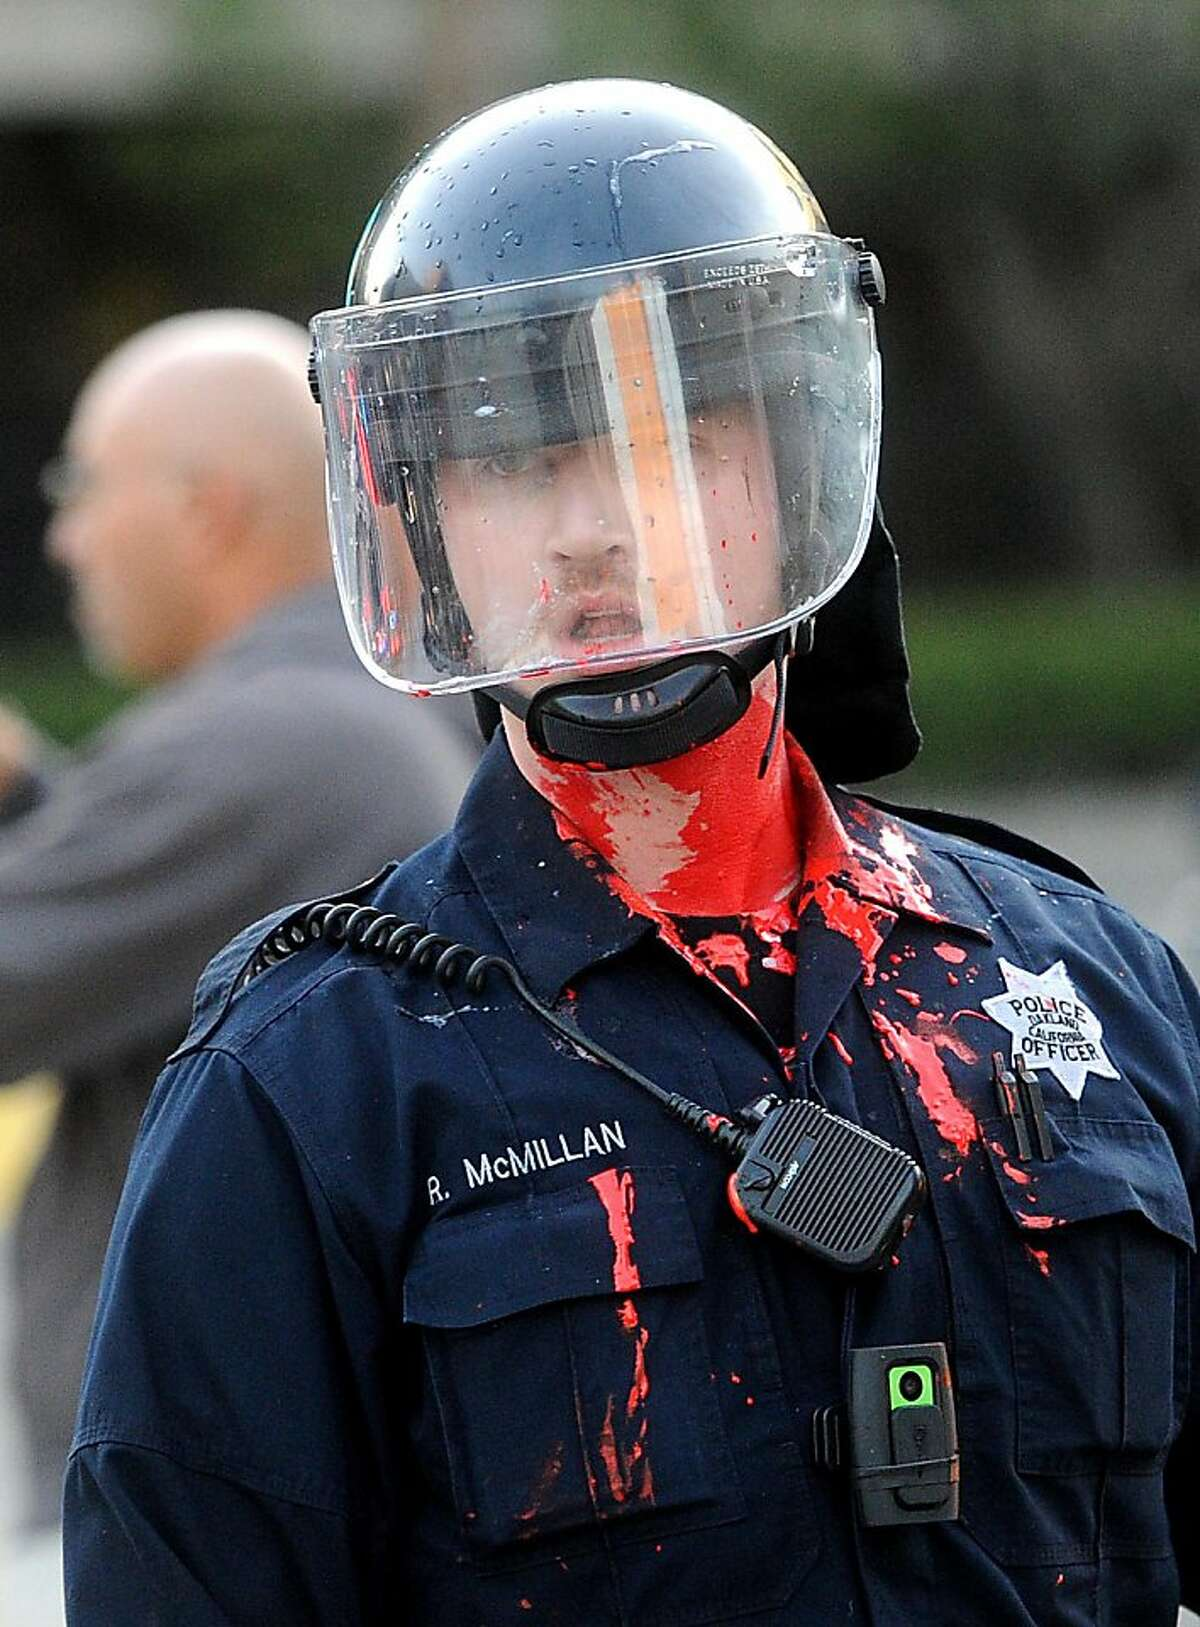 Red paint thrown by protesters coats officer McMillan during an Occupy Oakland demonstration on Tuesday, Oct. 25, 2011, in Oakland, Calif.